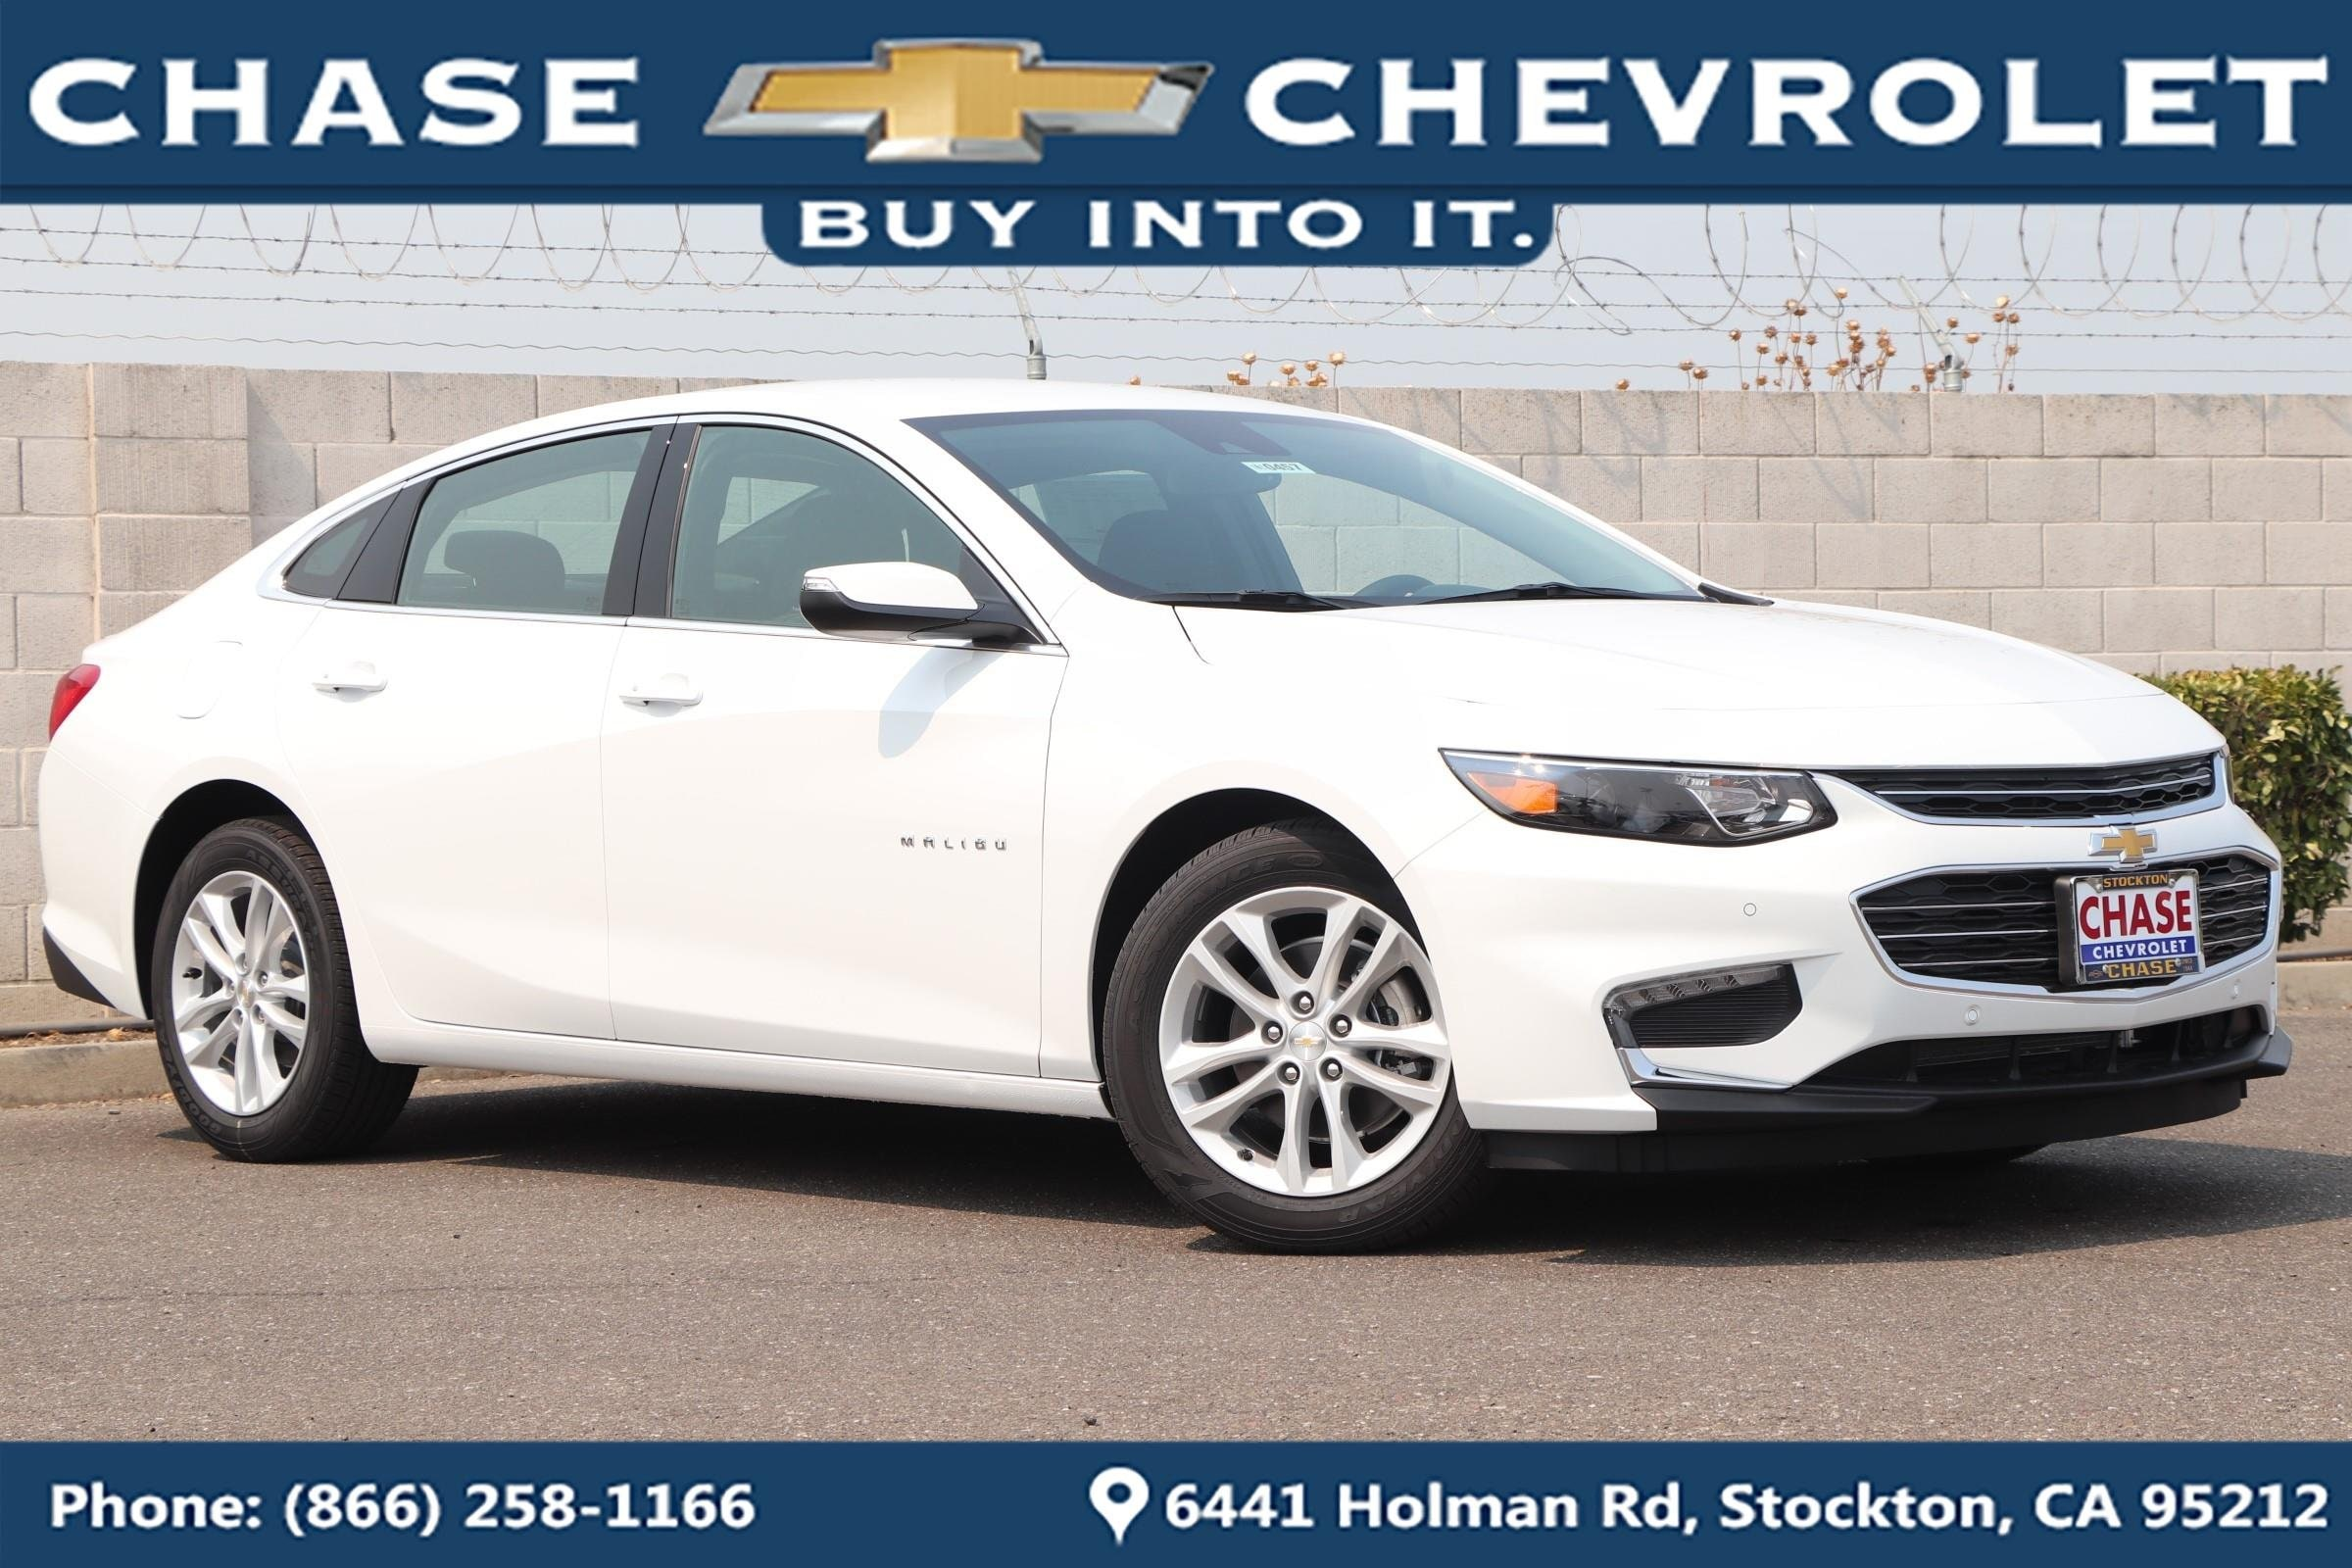 New Chevrolet Malibu in Stockton CA